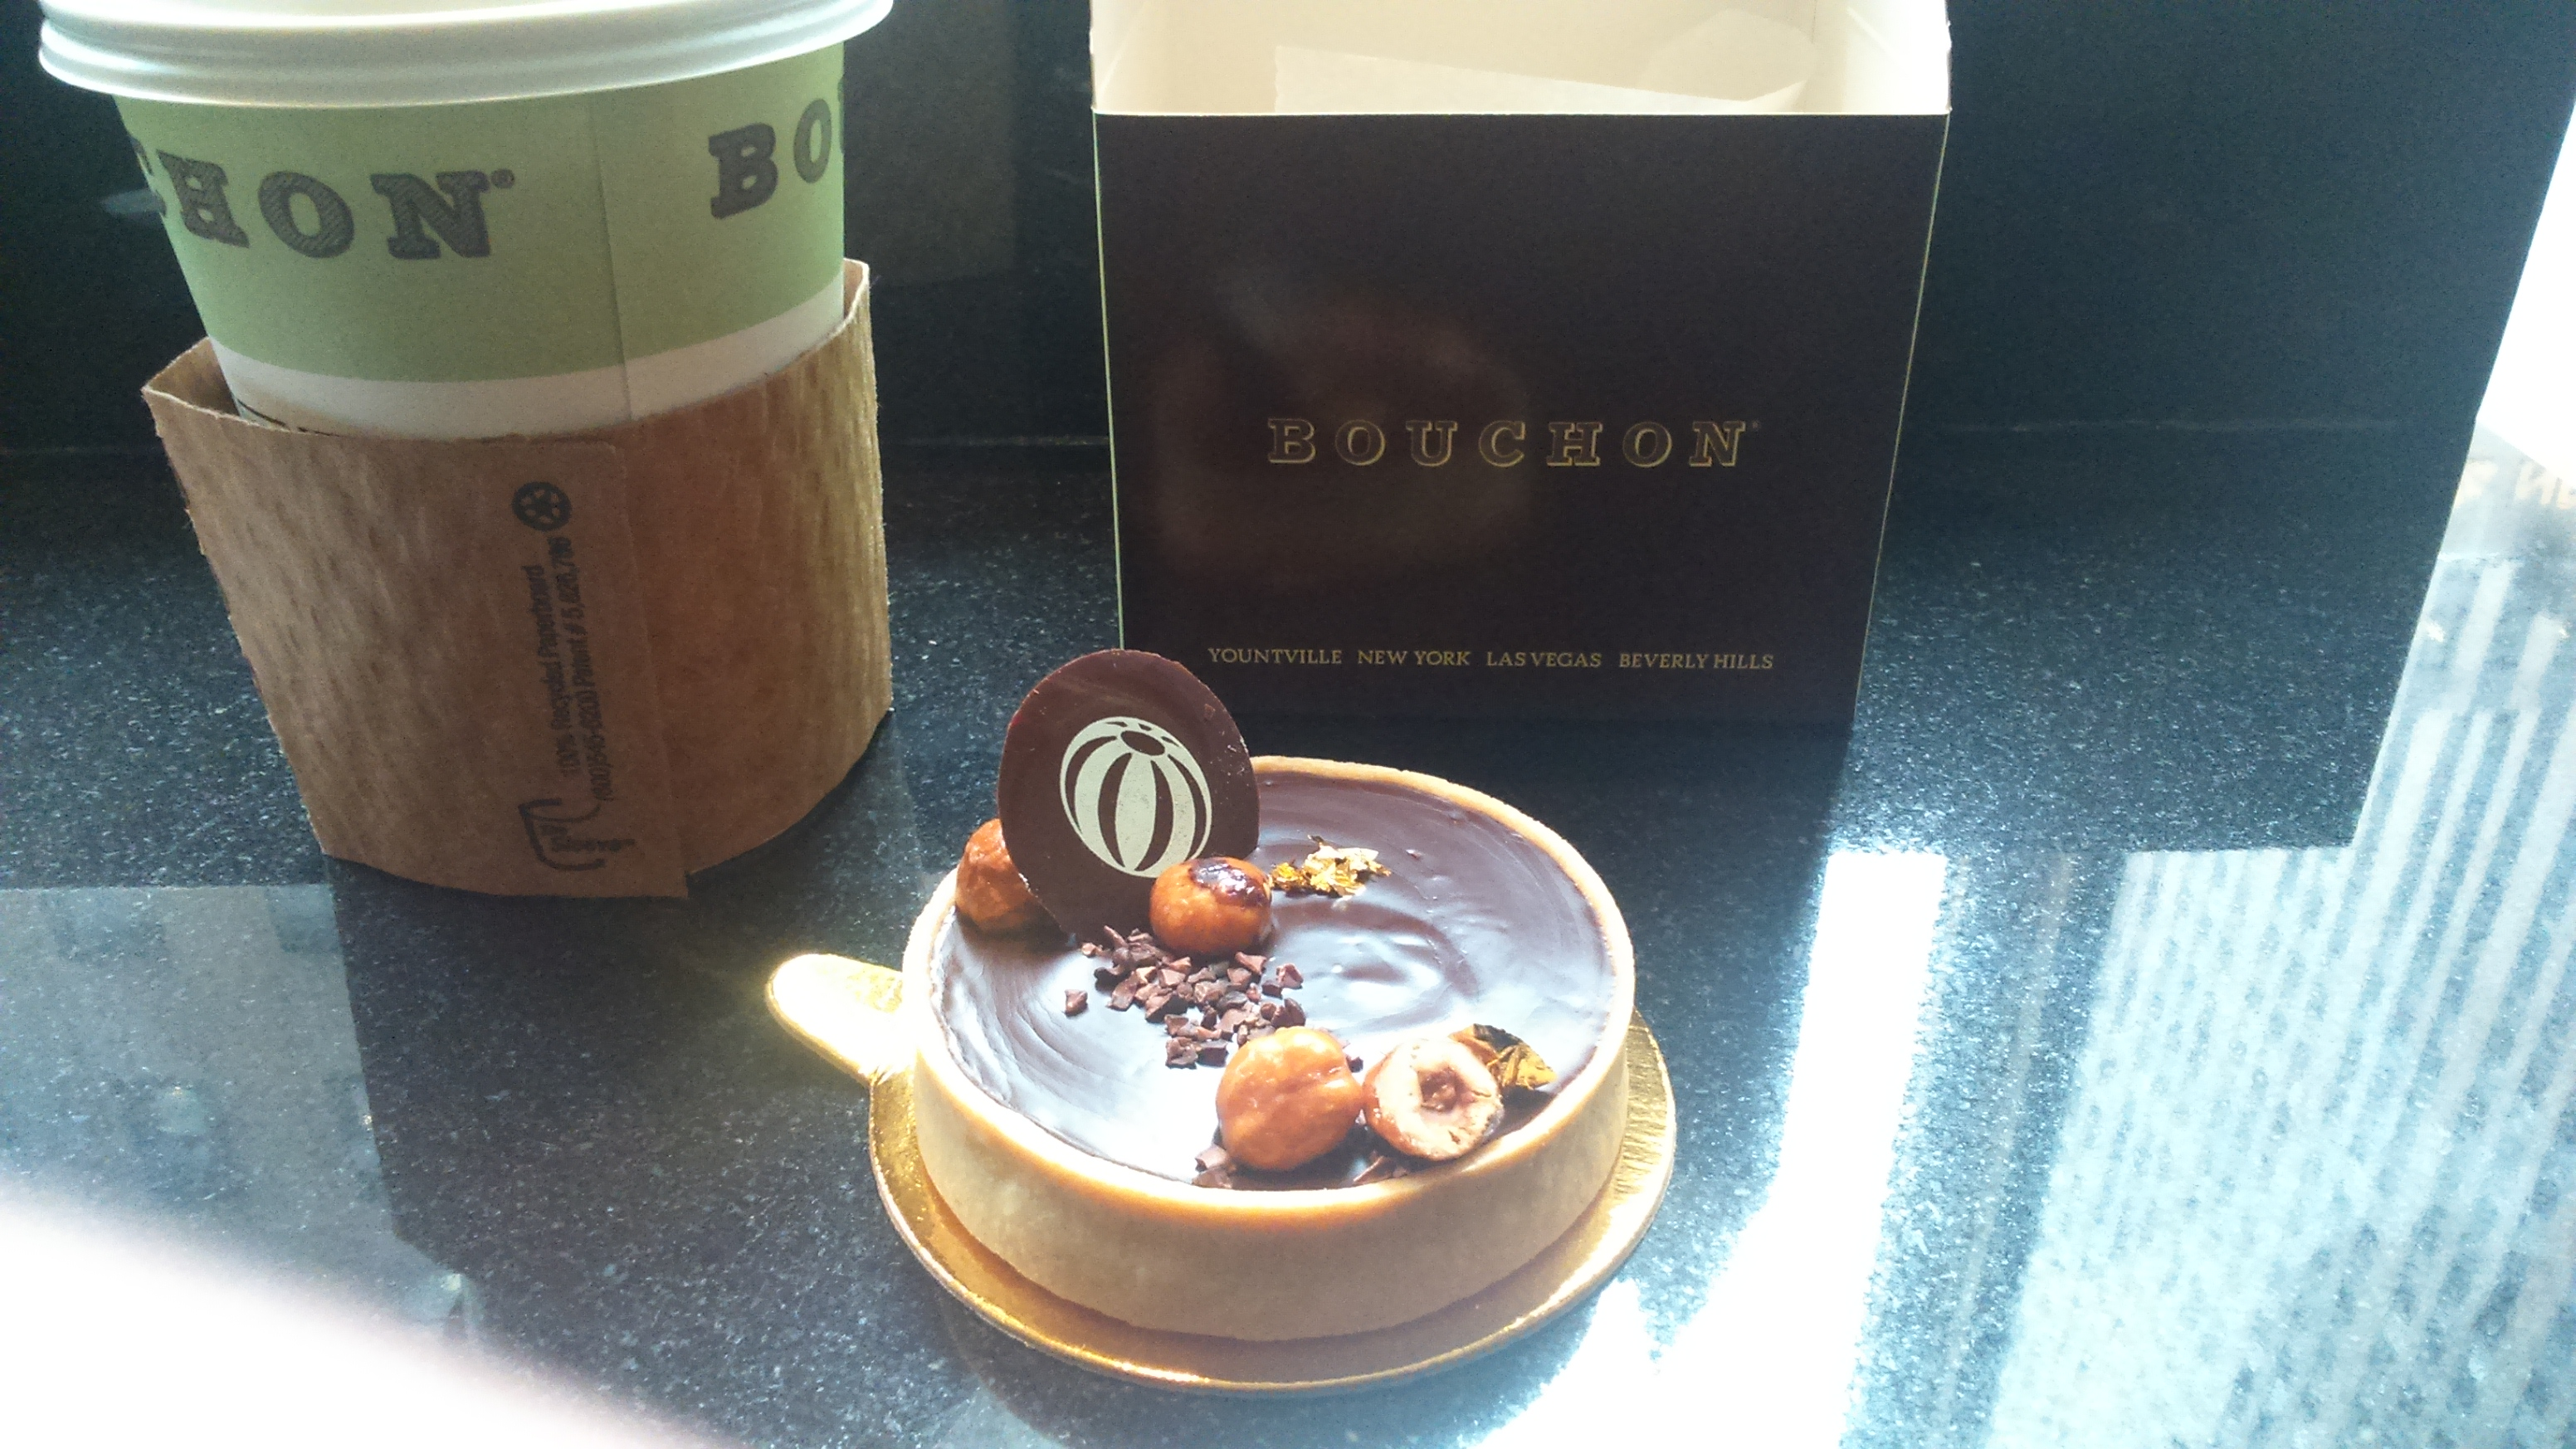 Chocolate and Hazelnut Tart, Bouchon Bakery